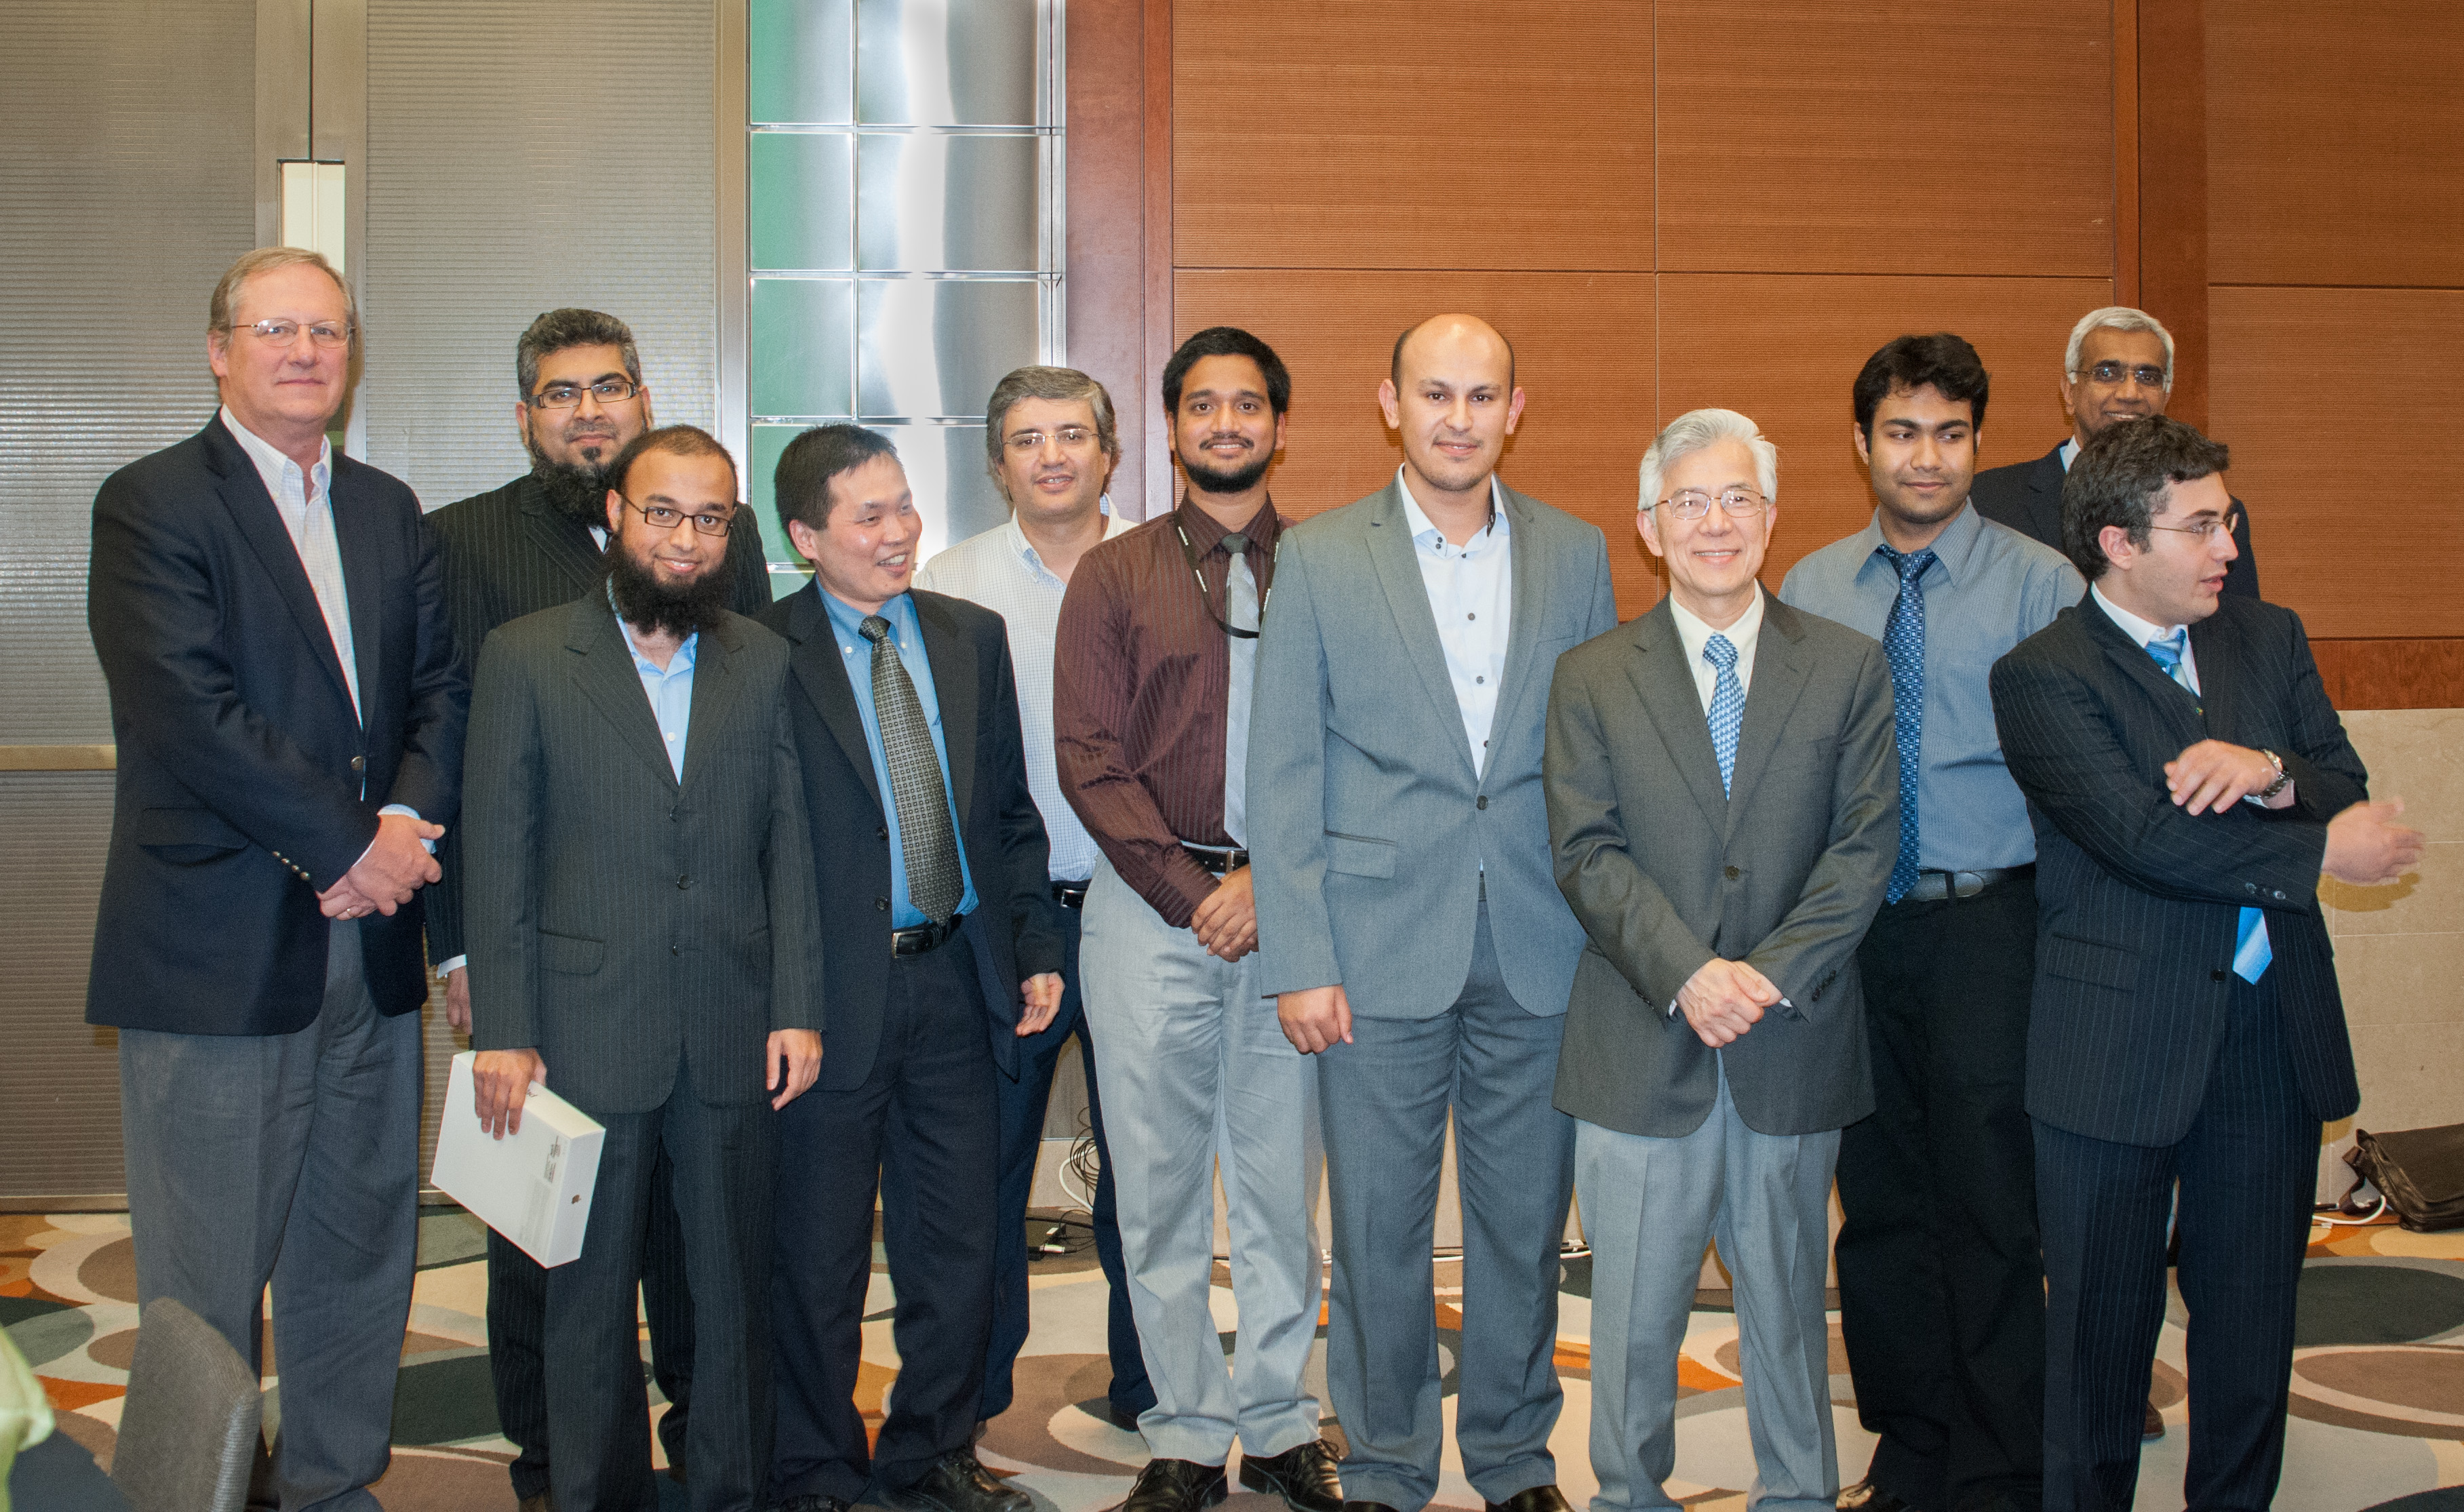 Mahdi Ben Ghorbel And The Prize Winners In EE Days With Some EE Faculty And The President